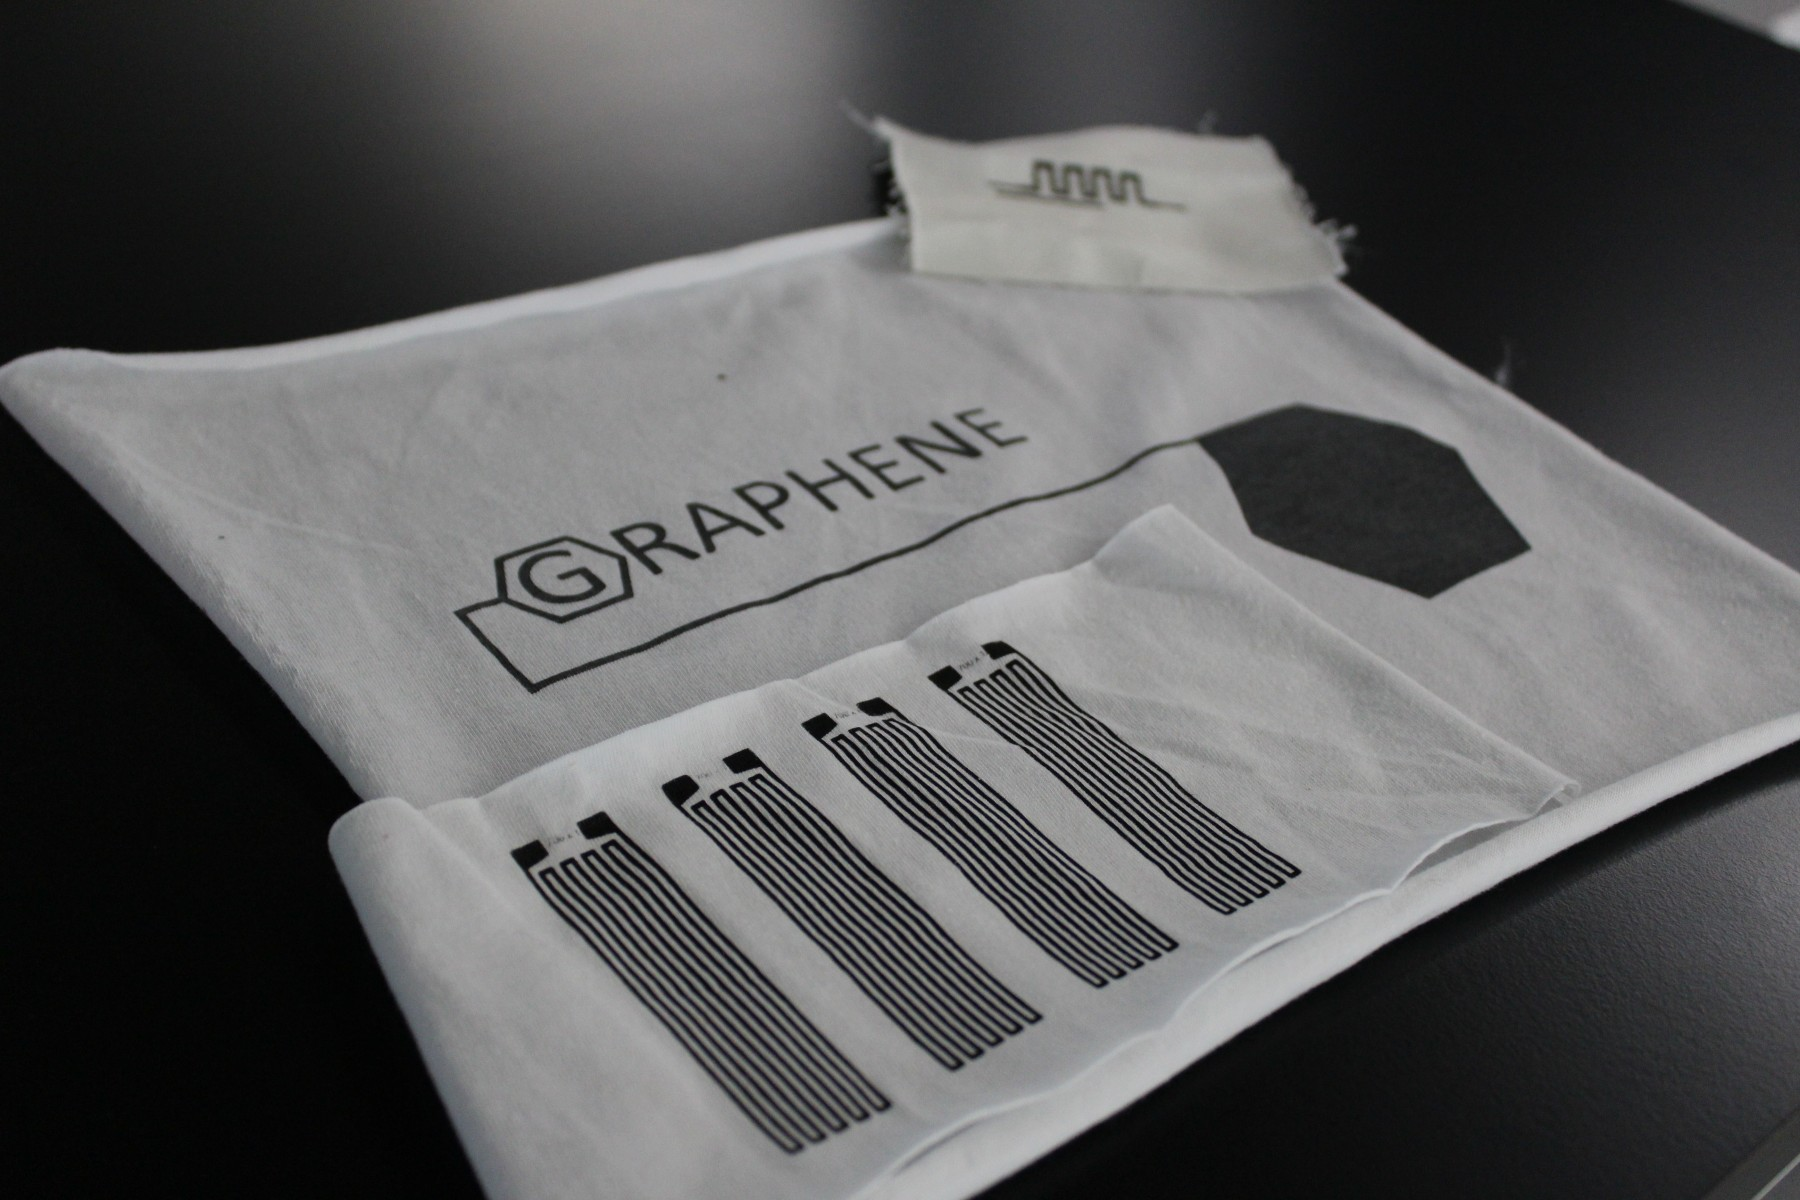 Graphene printed on cotton